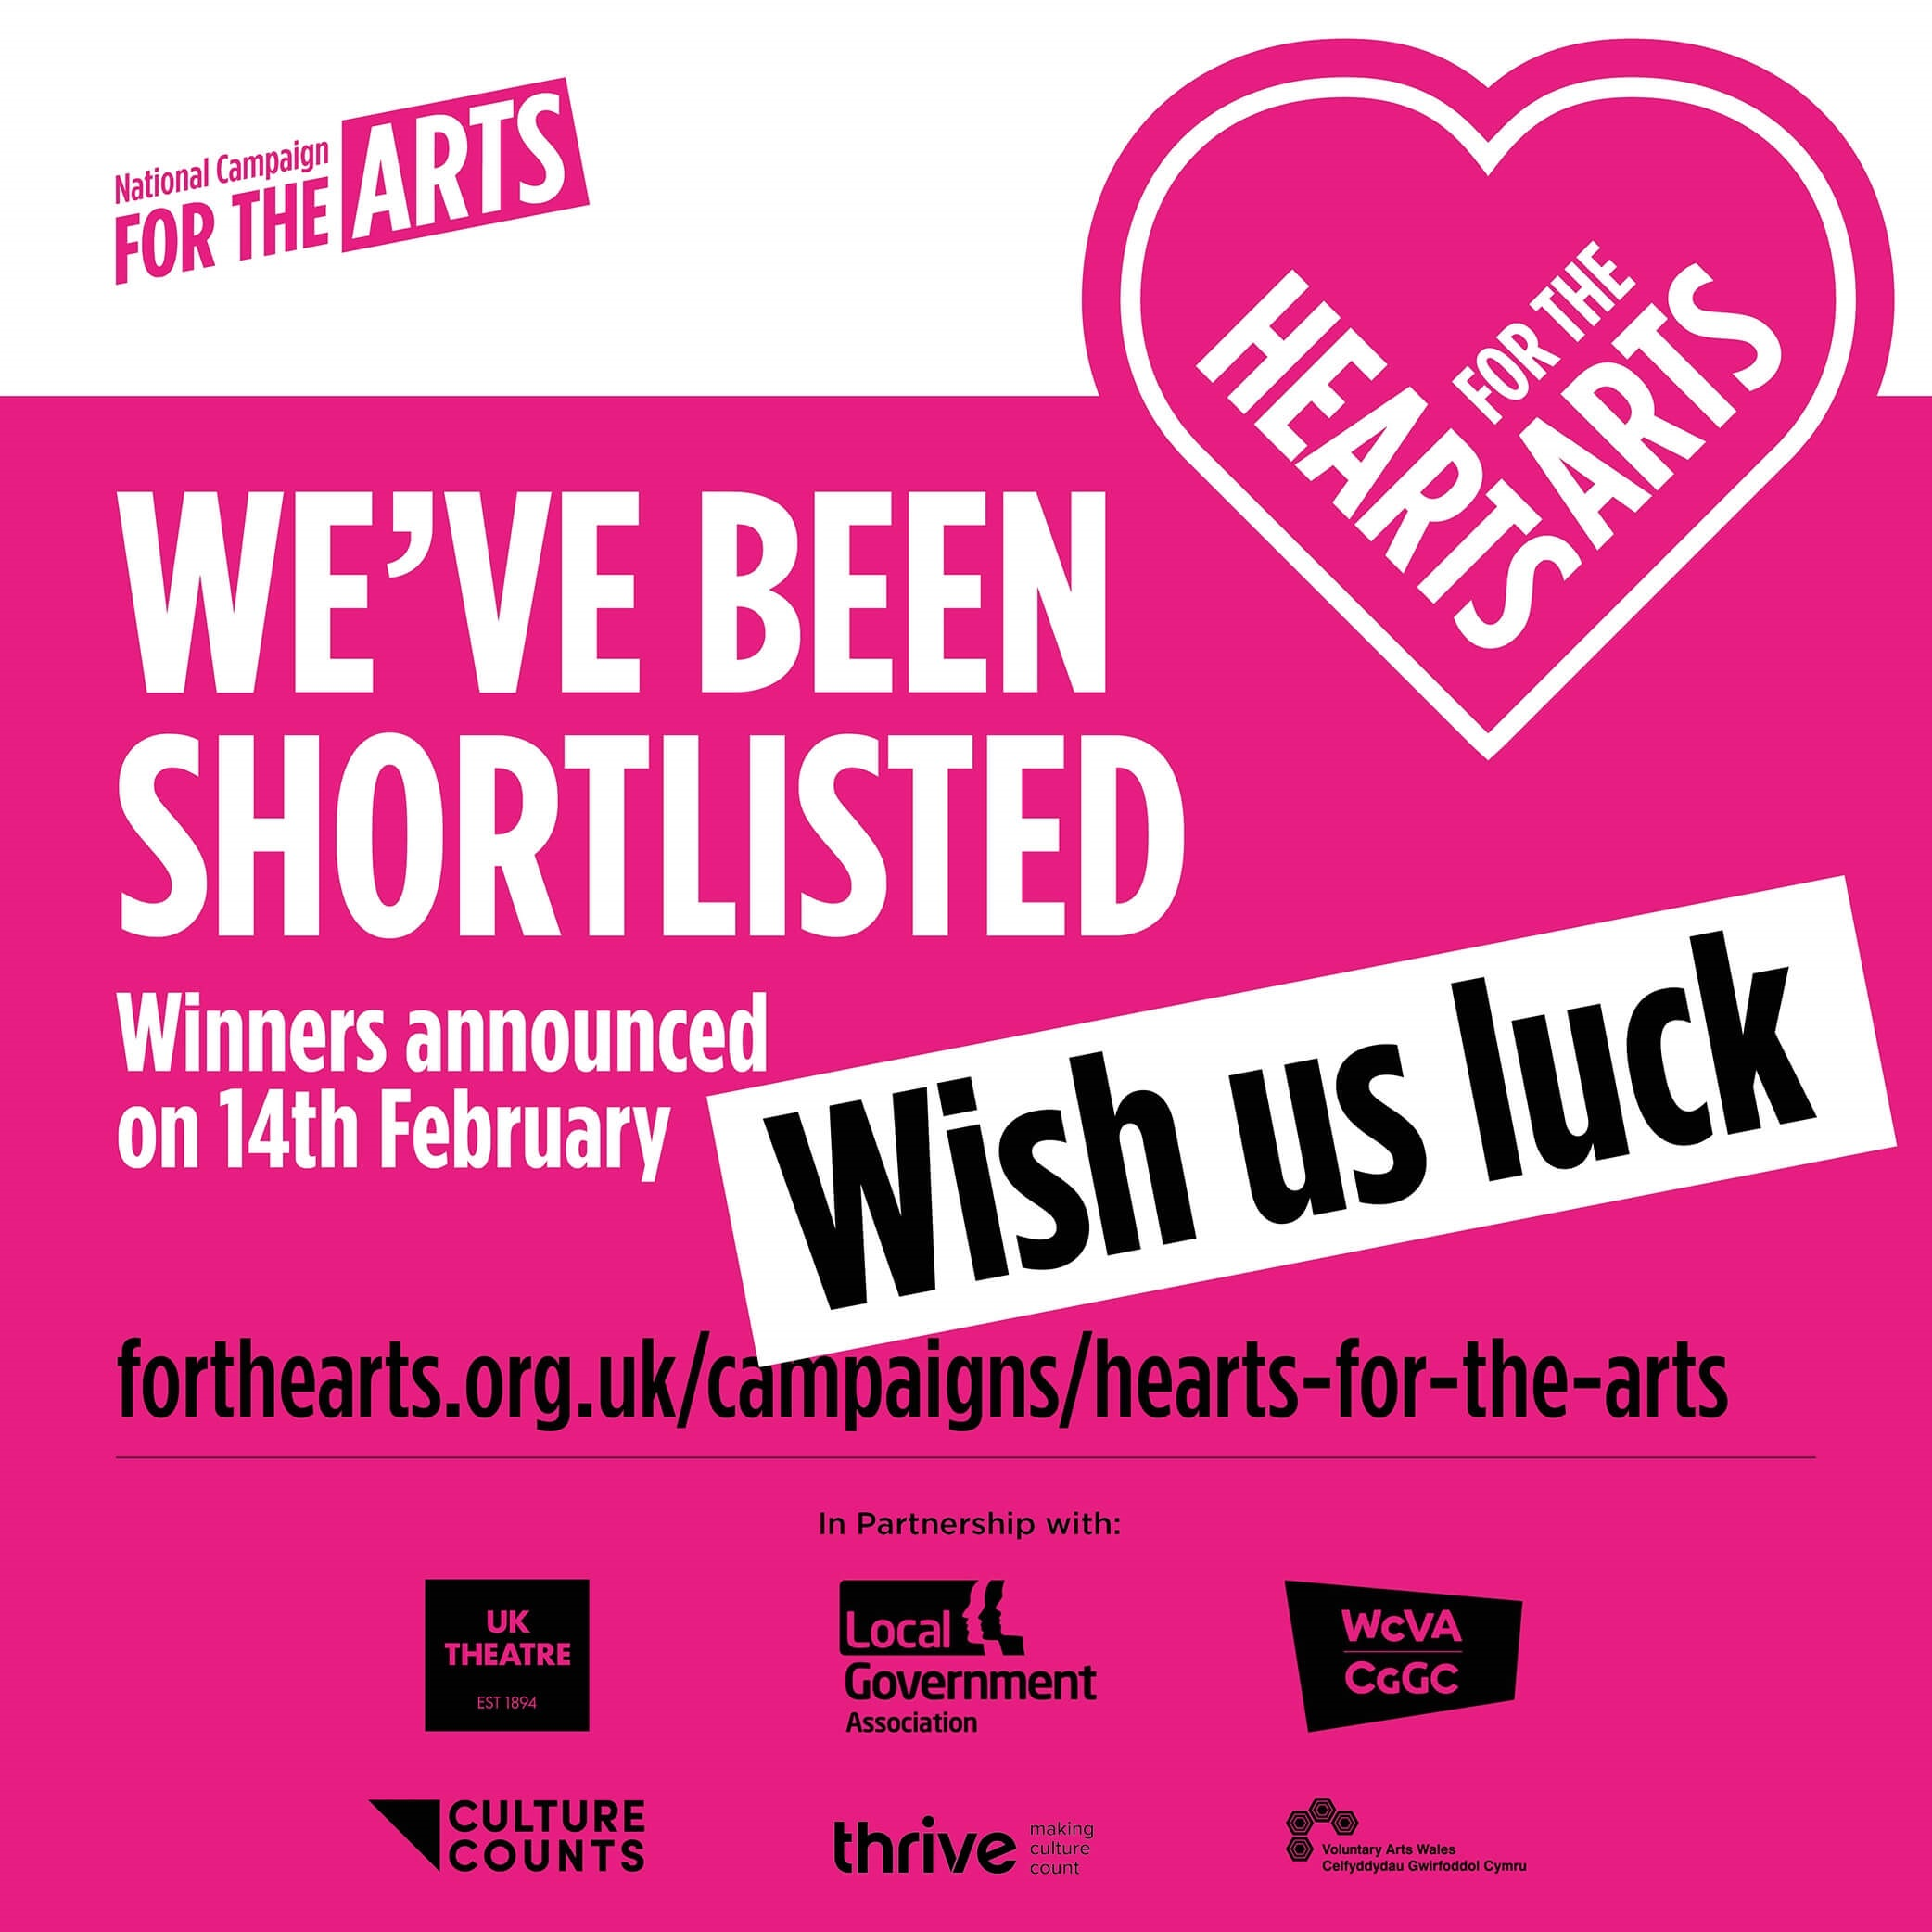 We've been shortlisted - Hearts for the Arts Graphics 2021small.jpg